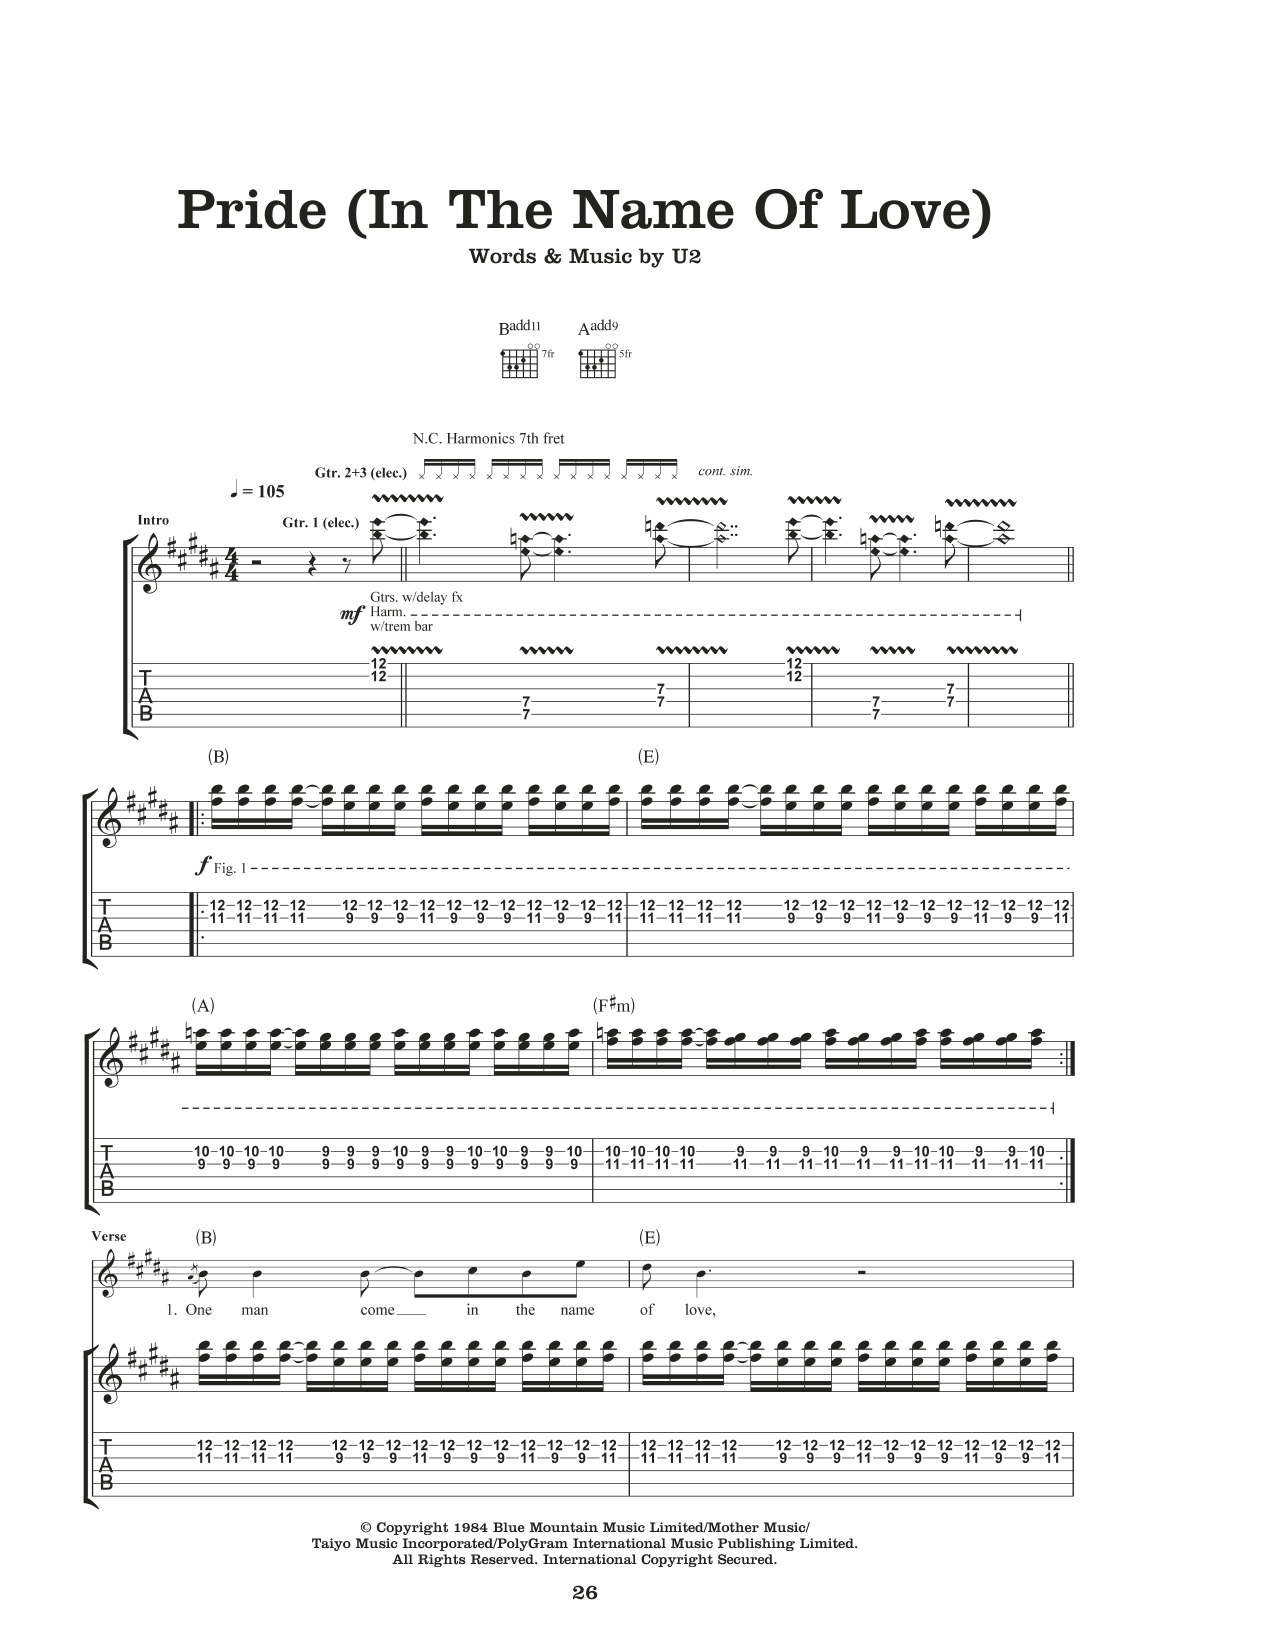 U2 Pride (In The Name Of Love) sheet music notes and chords. Download Printable PDF.